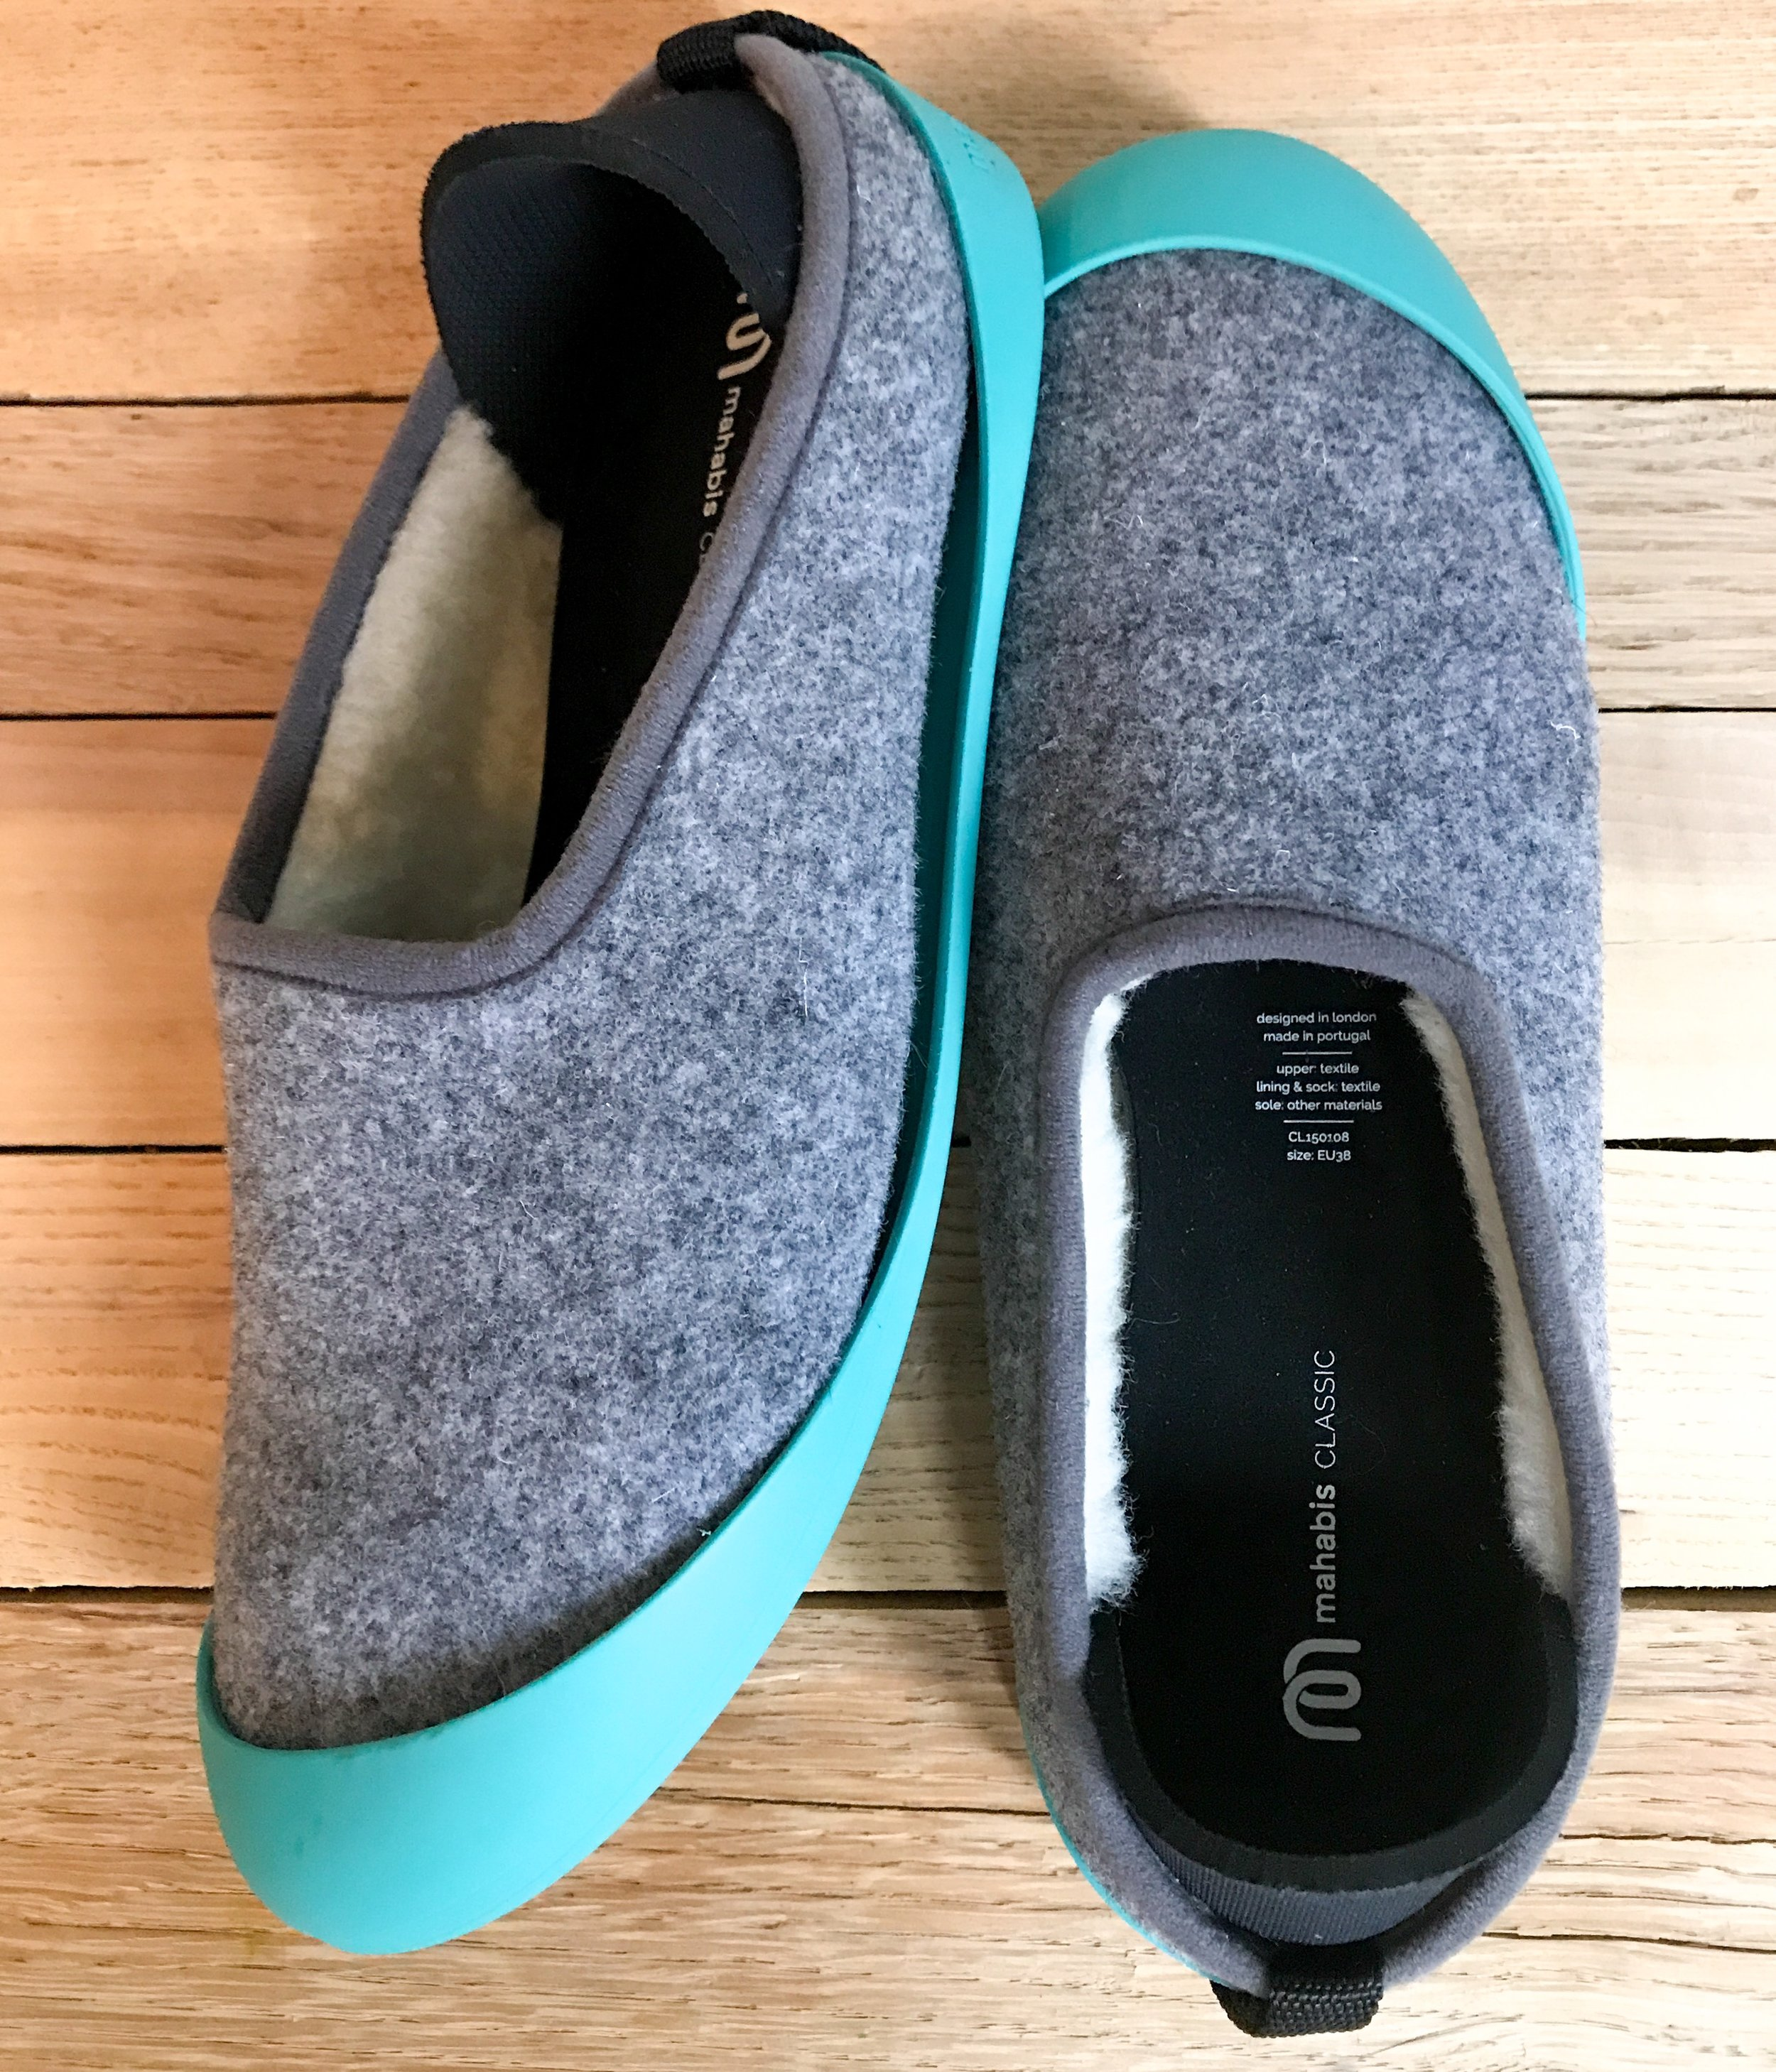 Comfortable Slippers While Pregnant - Slippers to support swollen pregnancy feet by Mahabis